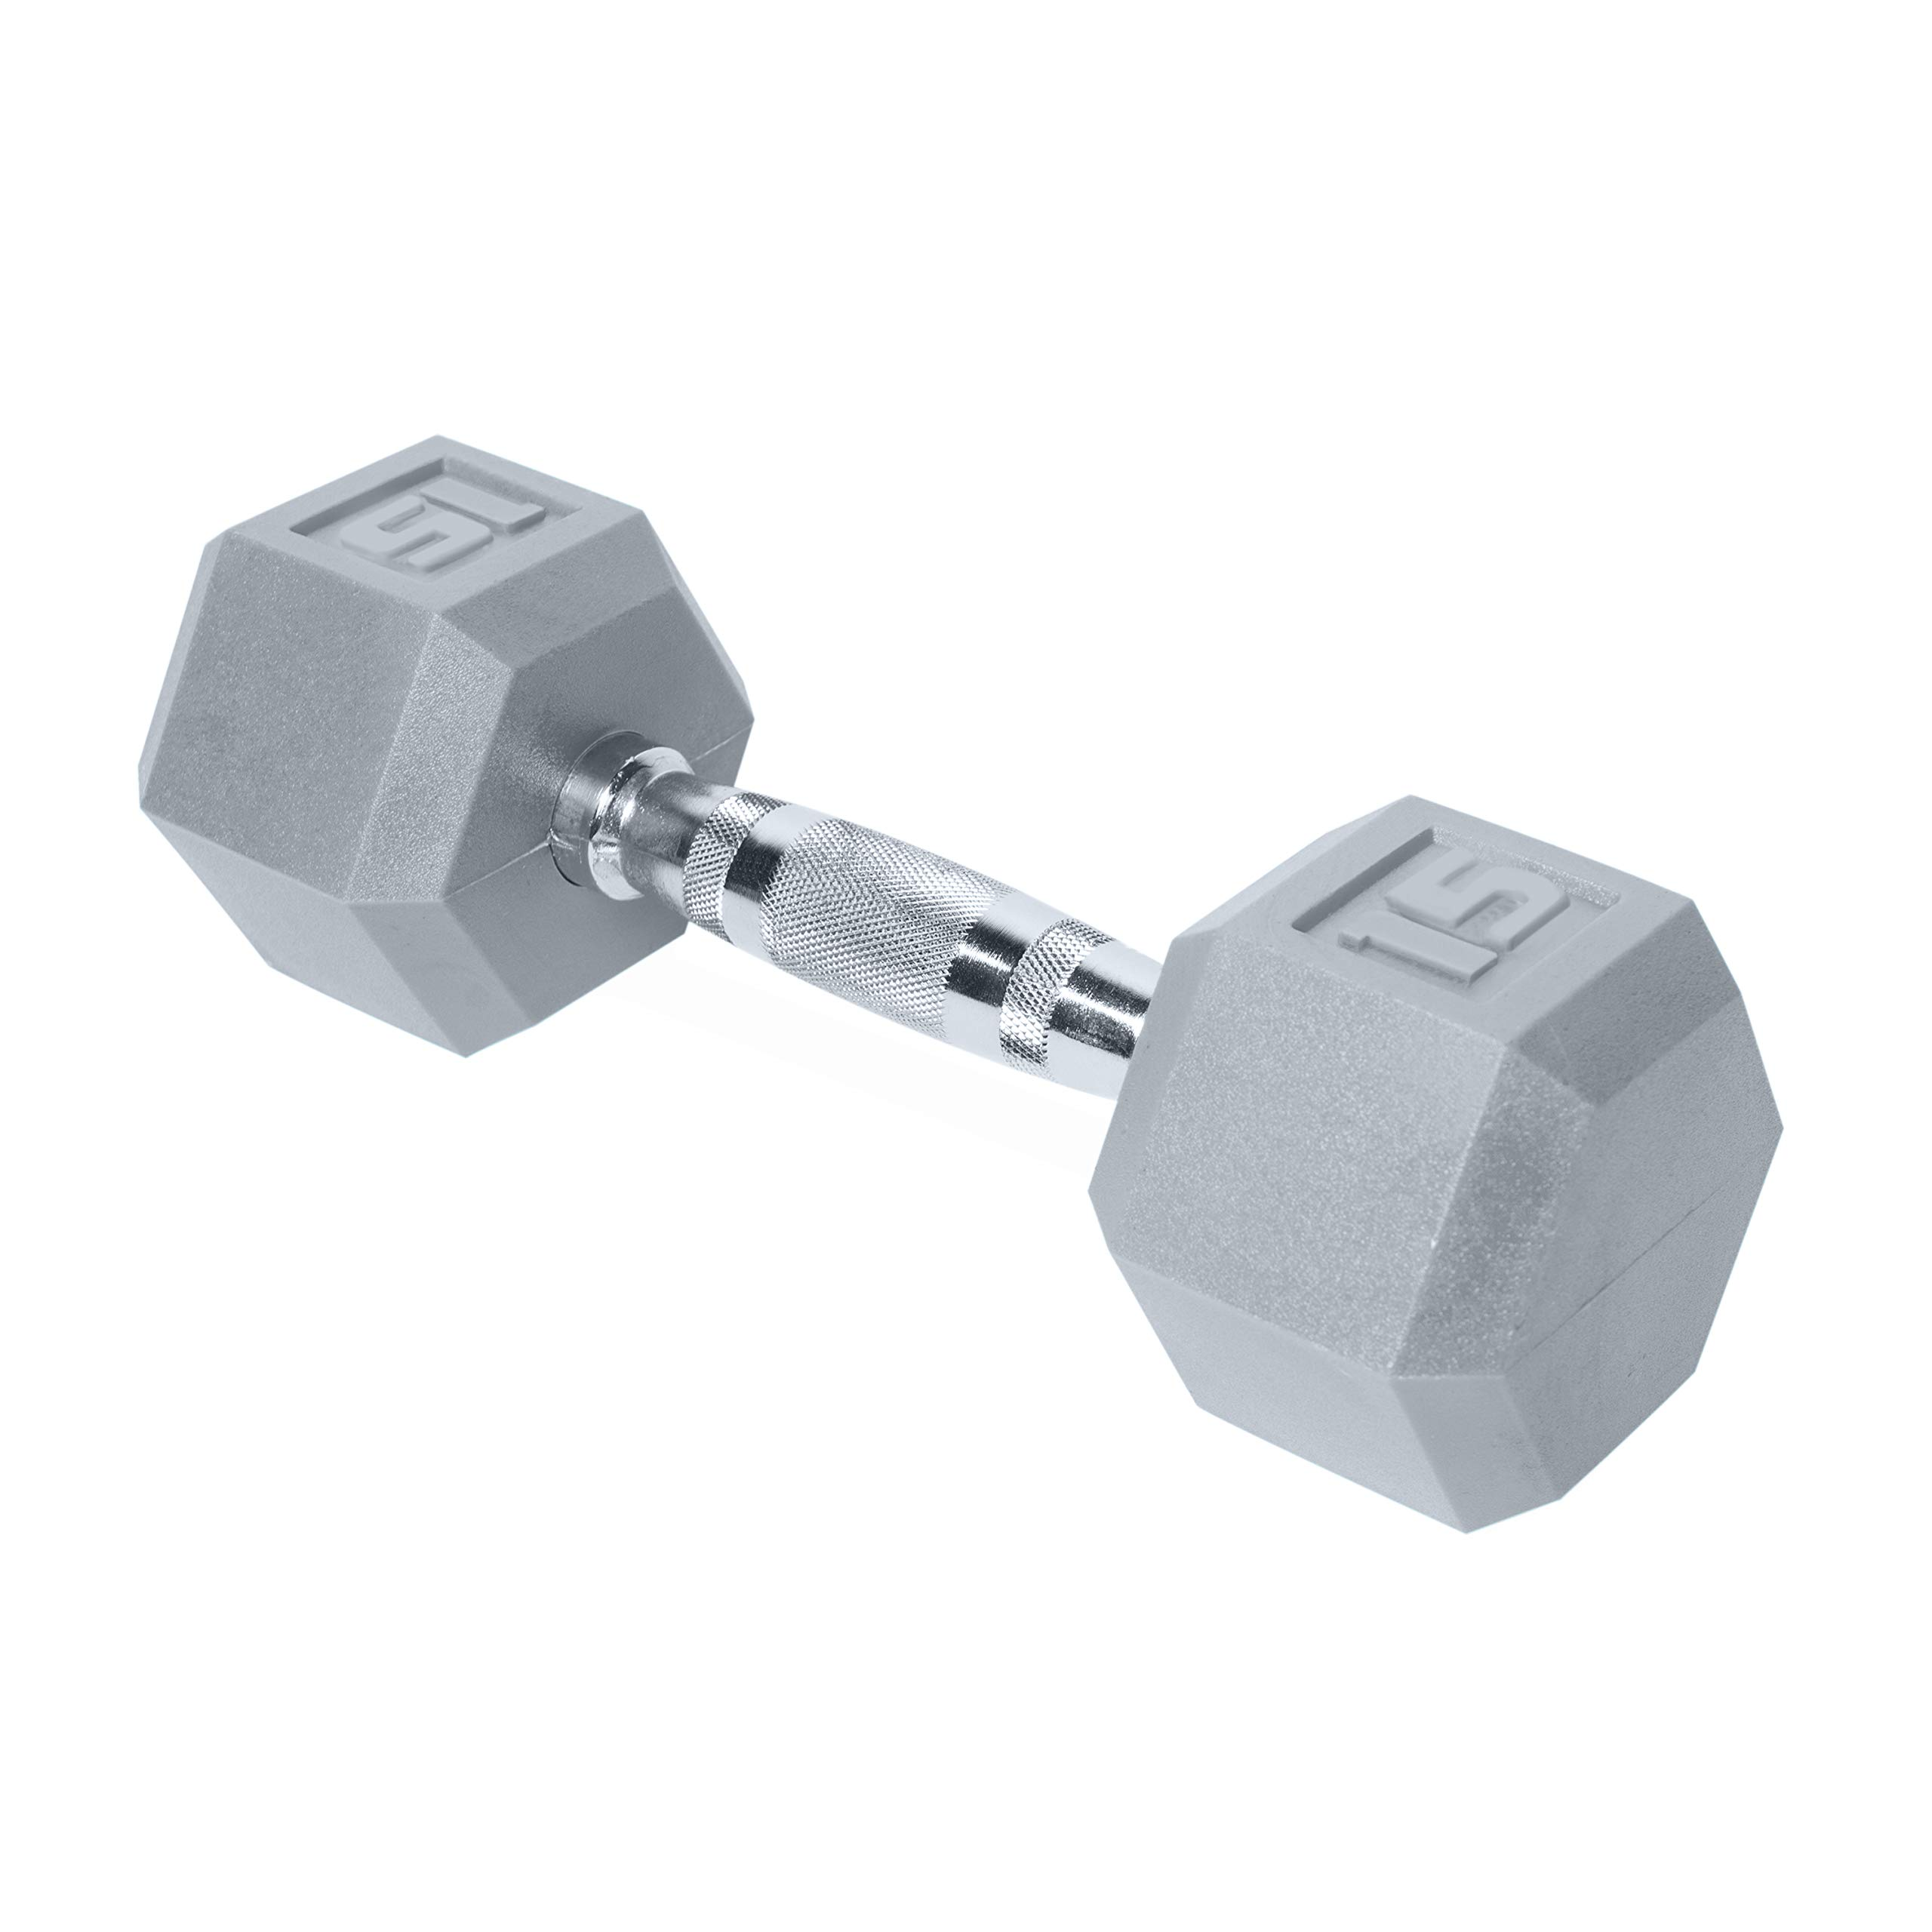 CAP Barbell SDR2-015 Color Coated Hex Dumbbell, Gray, 15 pound